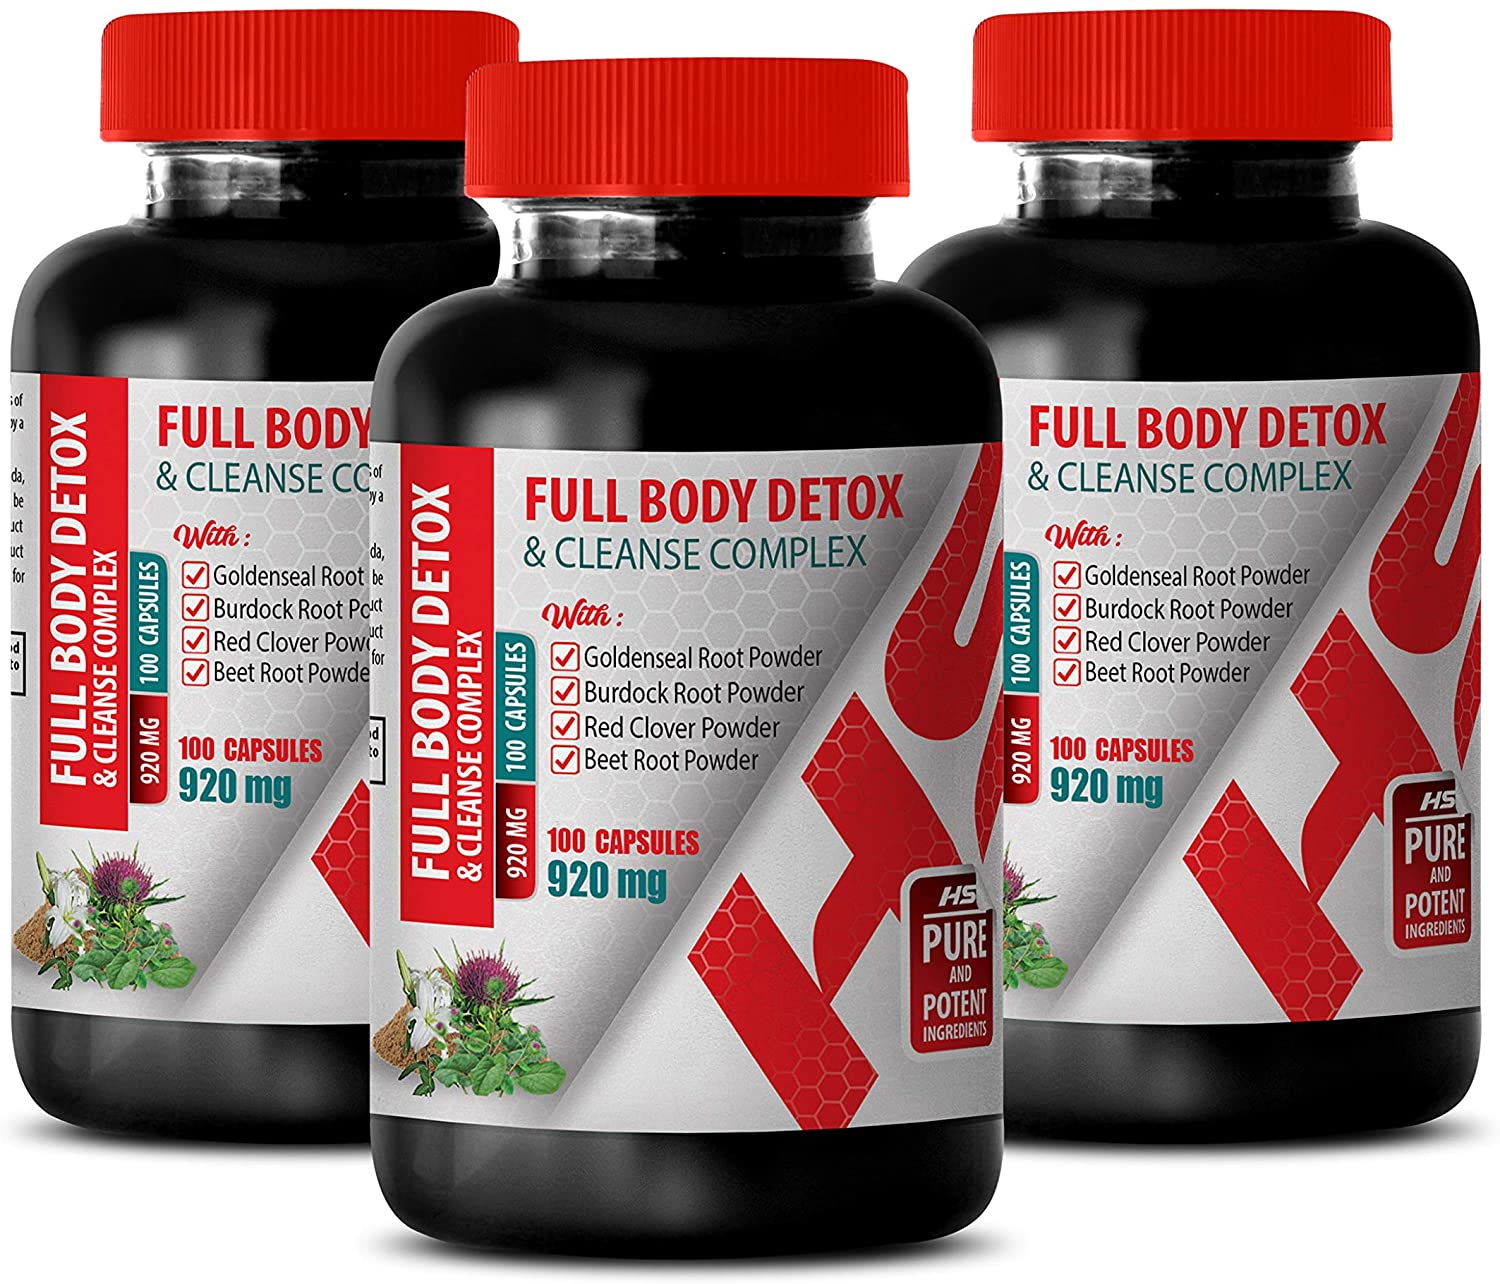 Body Detox and Cleanse for Men - Full Body Detox and Cleanse Complex 920 MG - Burdock Root Milk Thistle - 3 Bottles 300 Capsules